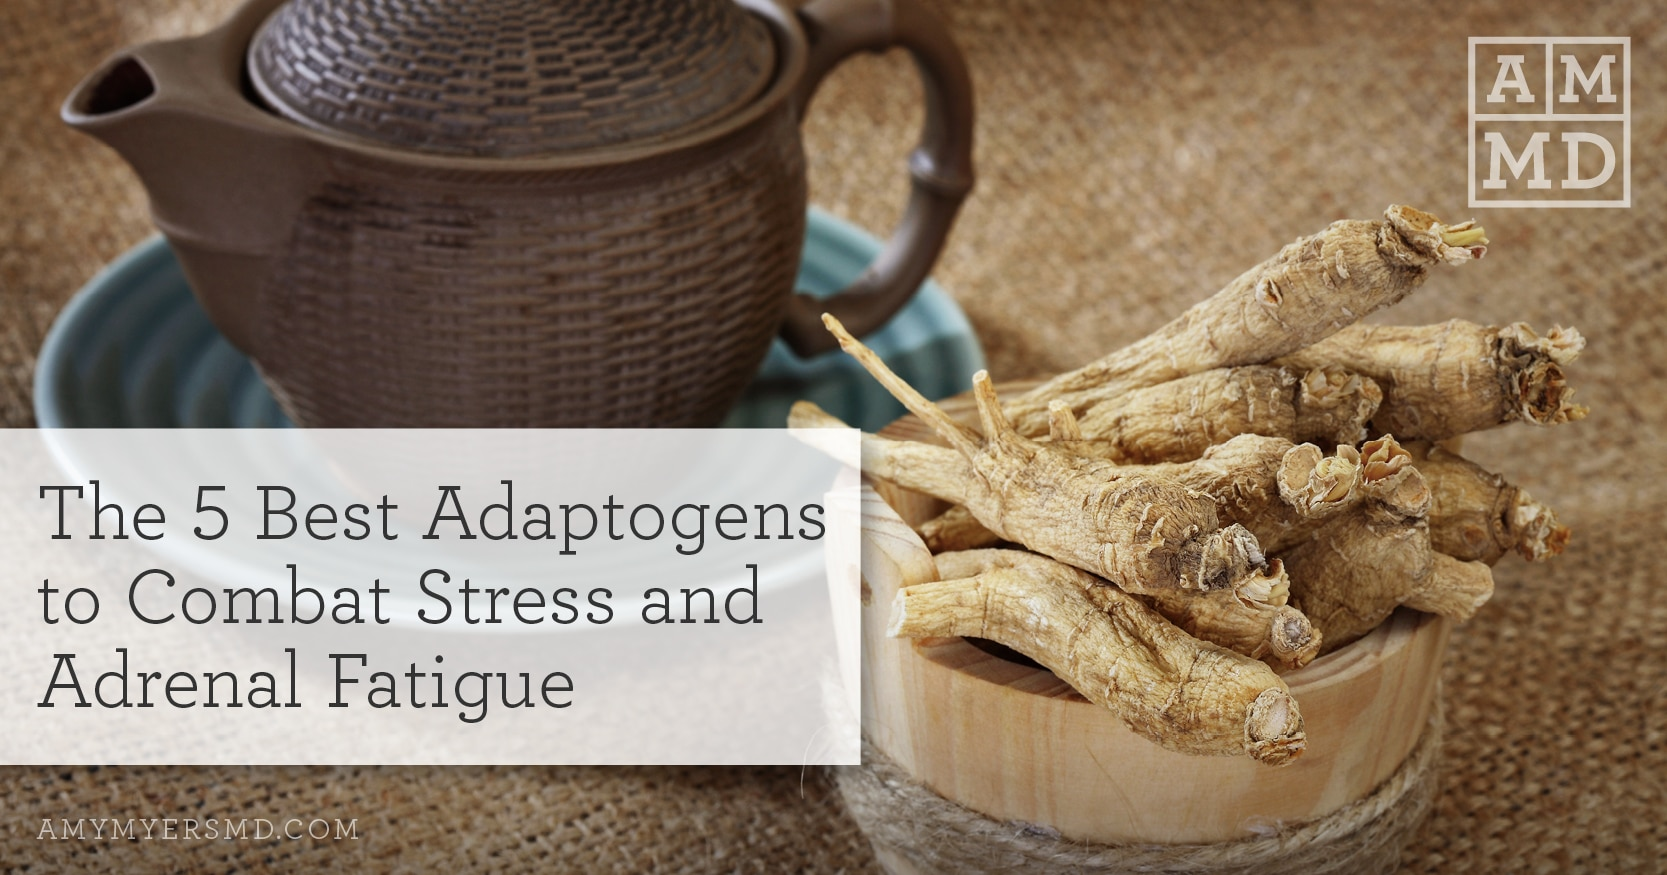 Best Adaptogens to Combat Stress and Adrenal Fatigue - Featured Image - Amy Myers MD